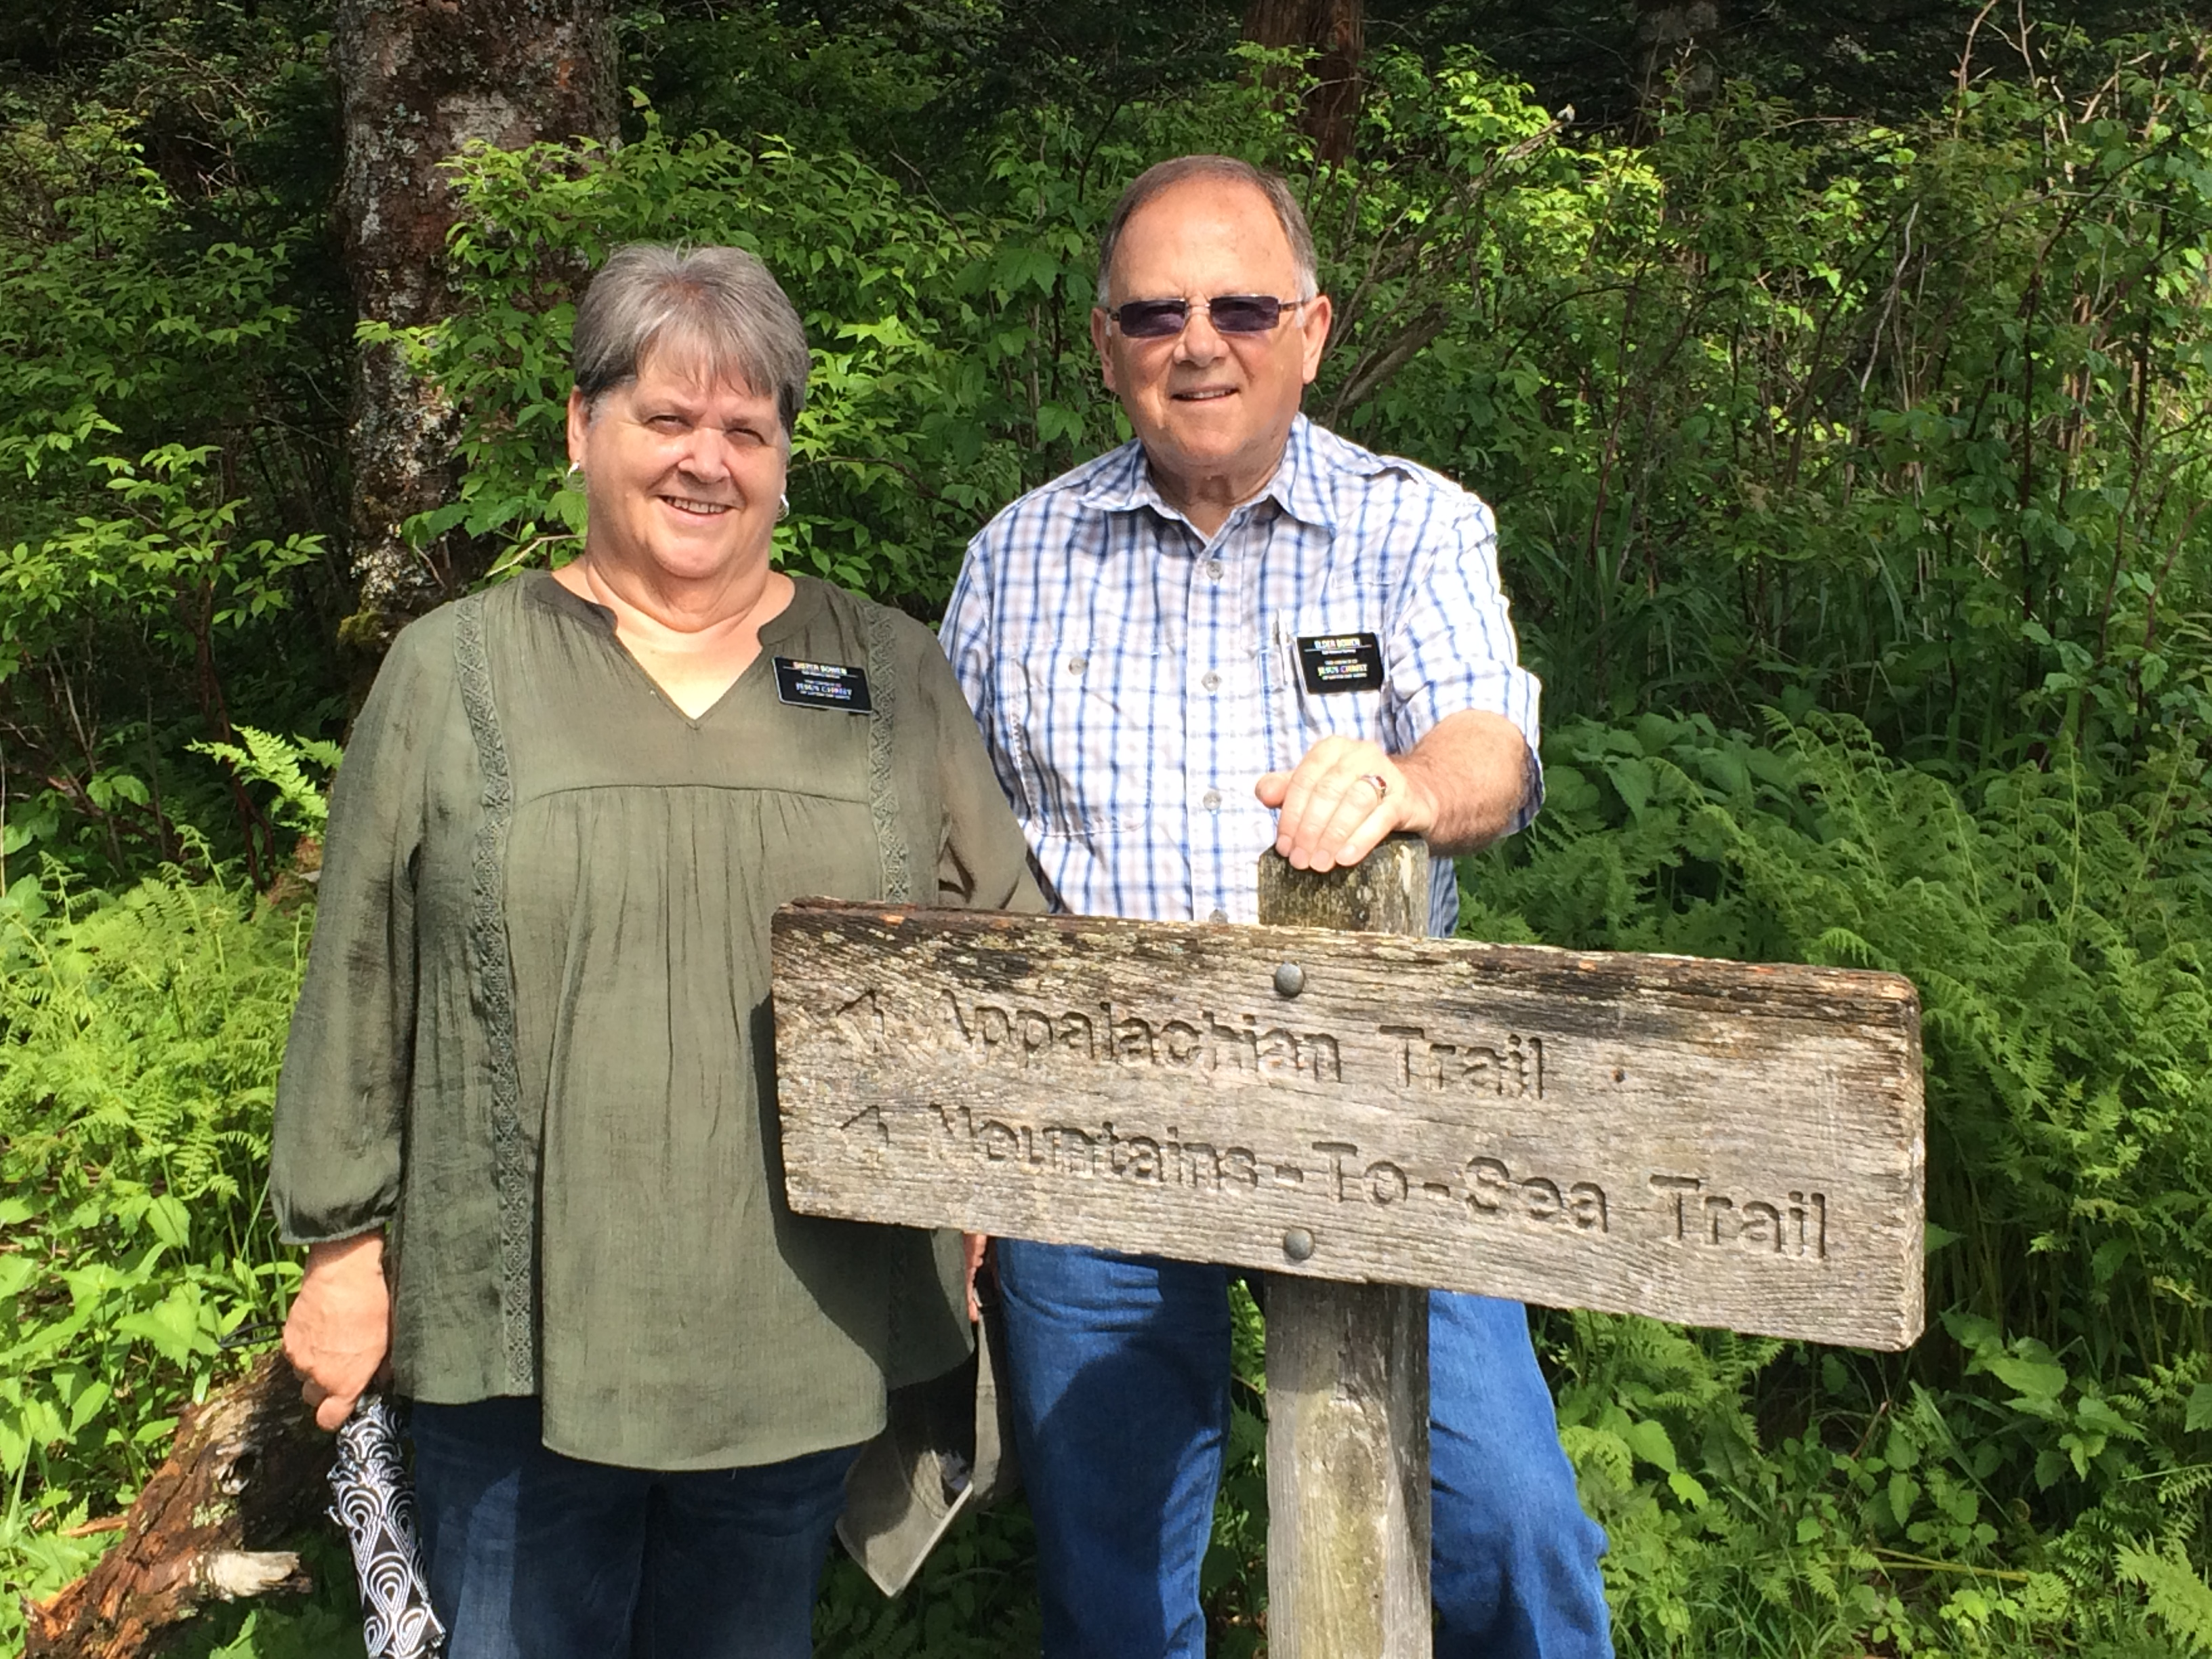 Sister Valerie Bowen and Elder Bruce Bowen, who are serving as self-reliance missionaries in the Tennessee Knoxville Mission, spend some time sight-seeing along the Appalachian Trail on one of their preparation days.